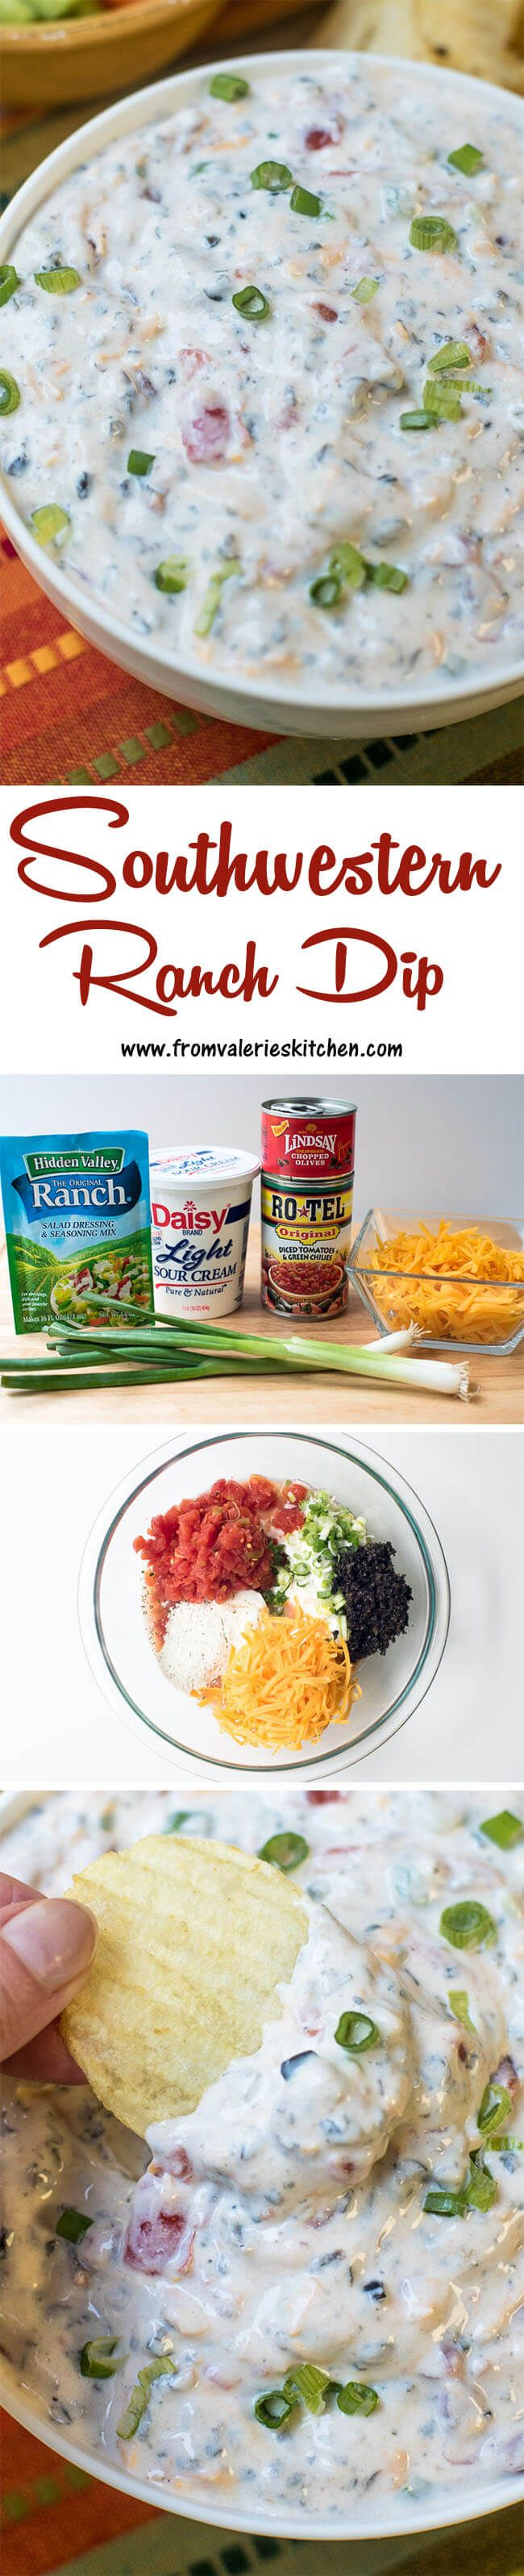 Try with subbing in #hiddenvalley greek yogurt dip and greek yogurt Sponsored by Hidden Valley #rancheverything #ad